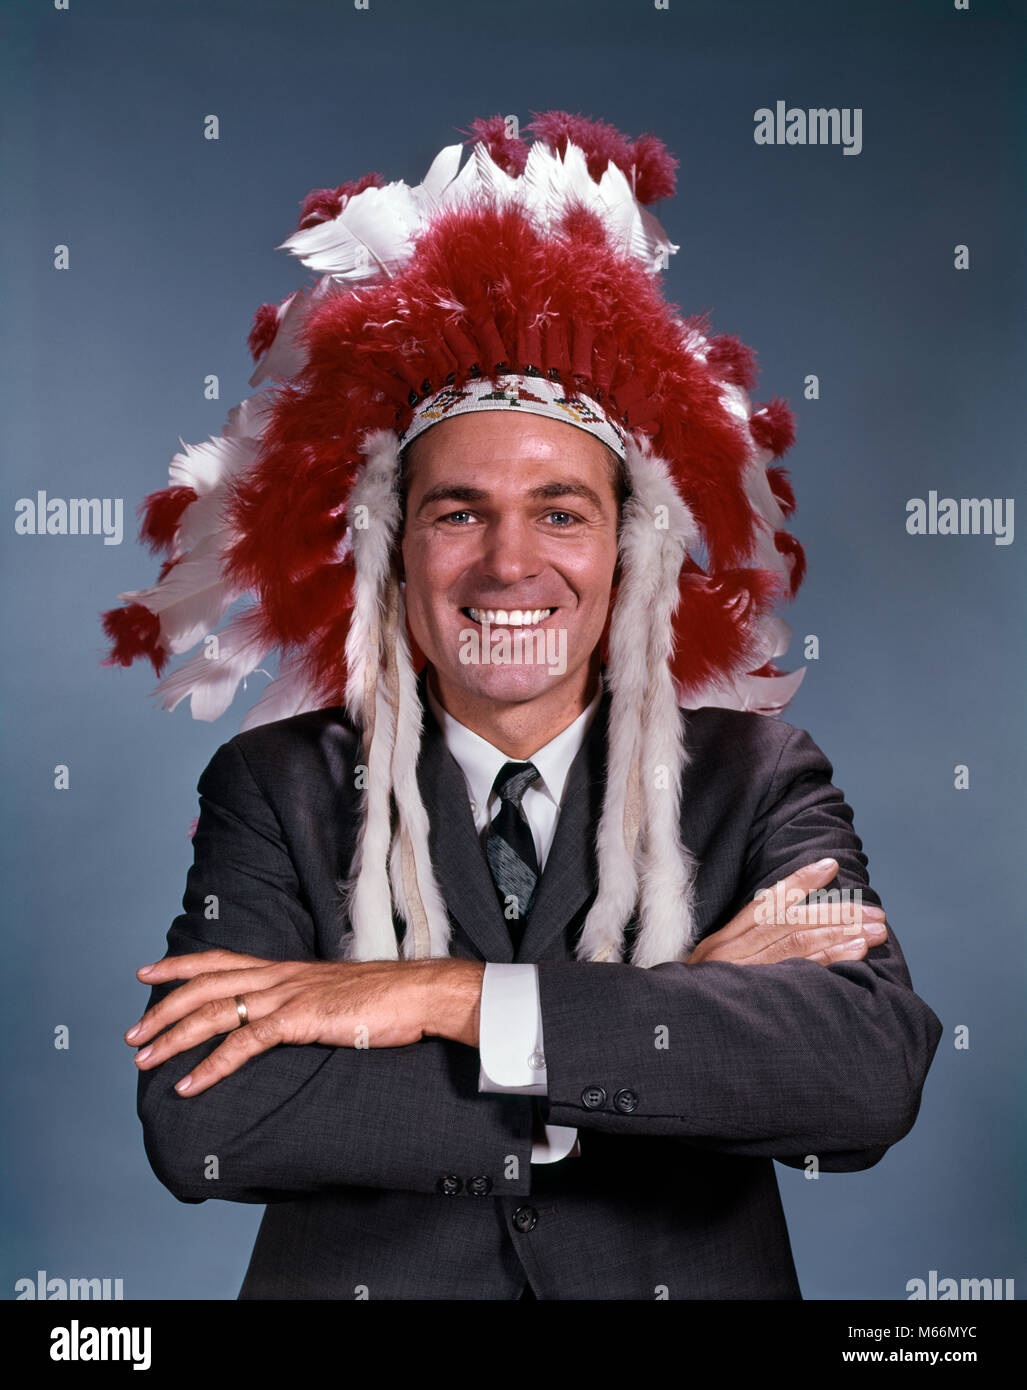 1960s SMILING MAN WEARING SUIT AND TIE AND NATIVE AMERICAN INDIAN FEATHER HEADDRESS ARMS FOLDED LOOKING AT CAMERA Stock Photo